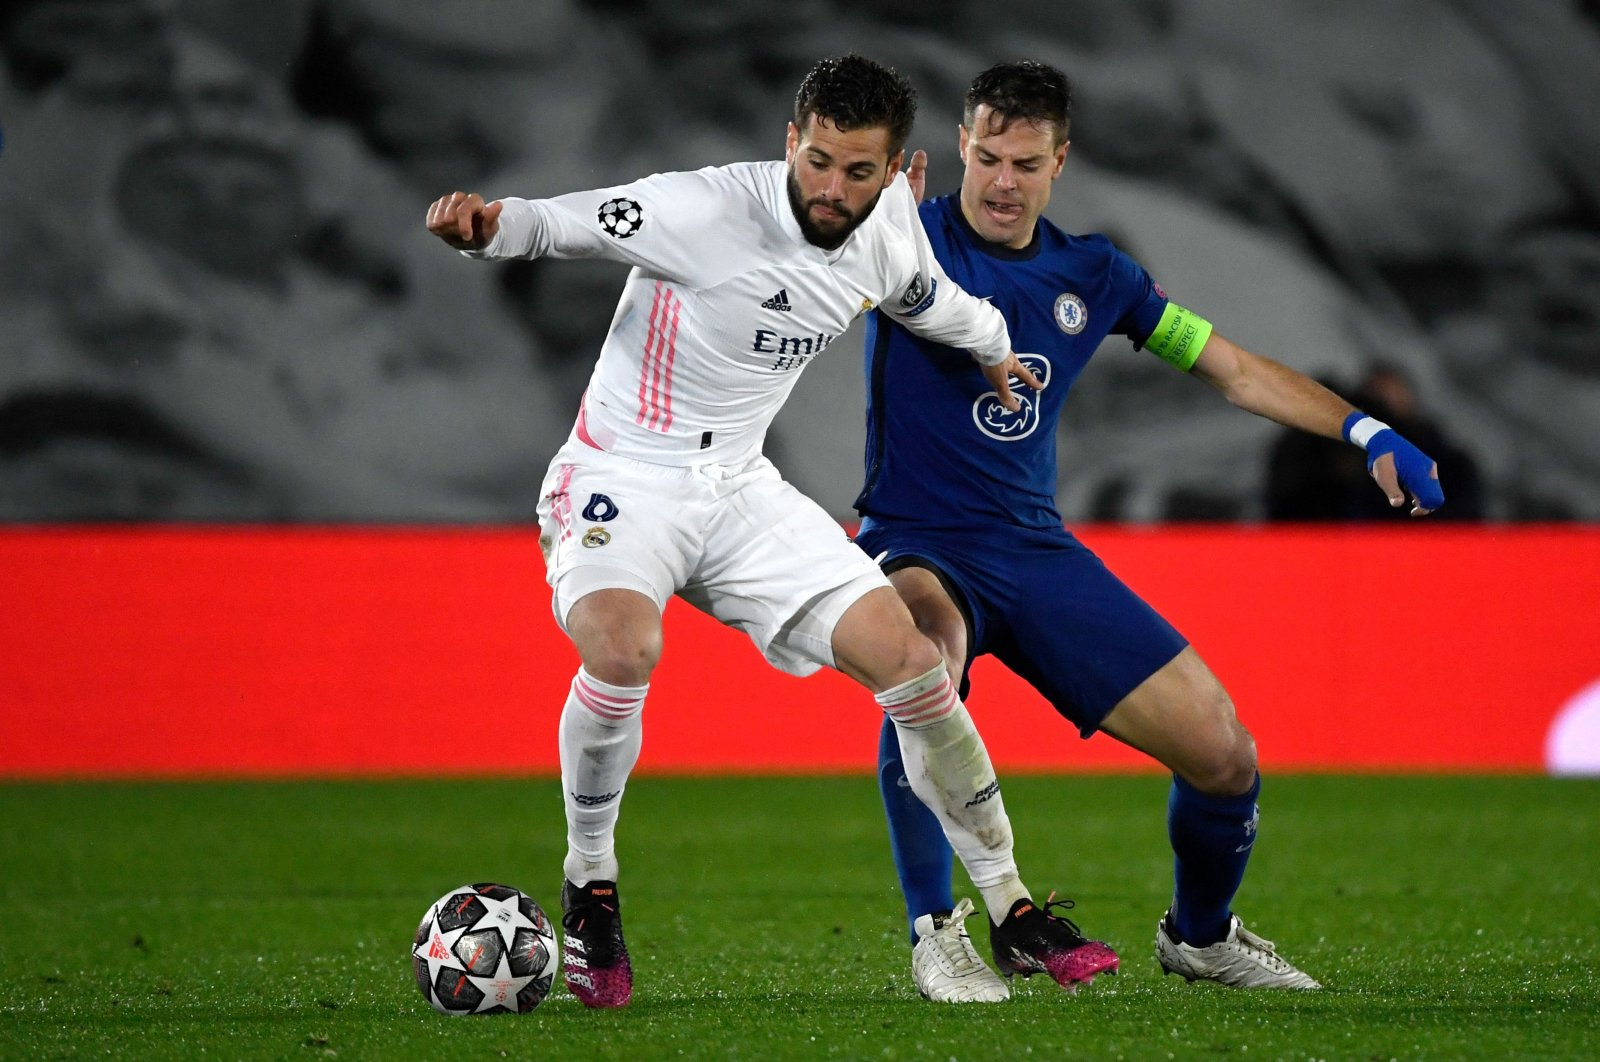 Real Madrid defender Nacho Fernandez (L) vies with Chelsea's Spanish defender Cesar Azpilicueta during the UEFA Champions League semifinal first leg match at the Alfredo di Stefano Stadium, Madrid, Spain, April 27, 2021. (AFP Photo)